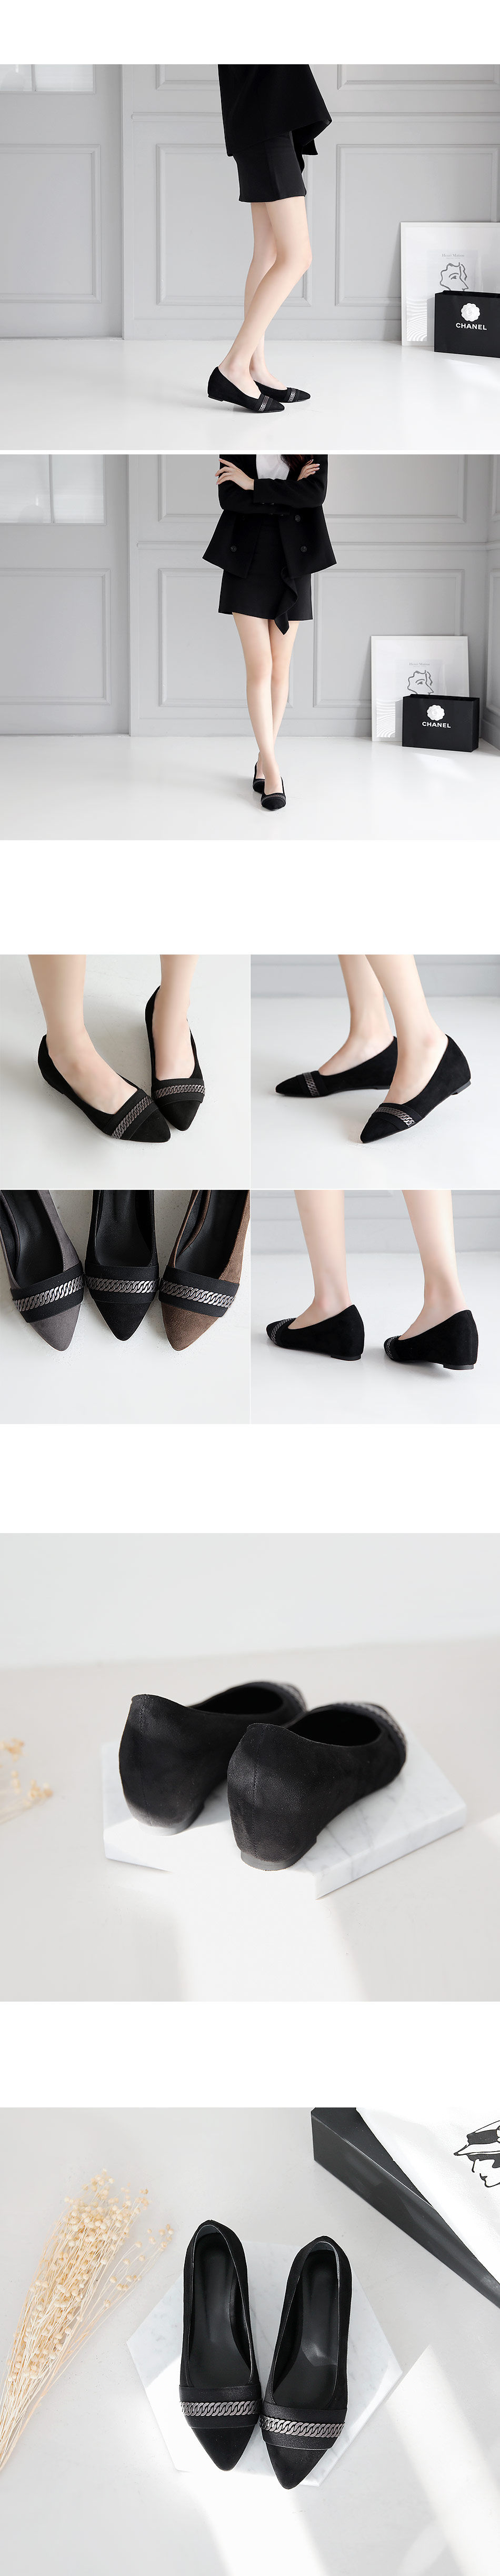 Leodon height flat shoes 5cm